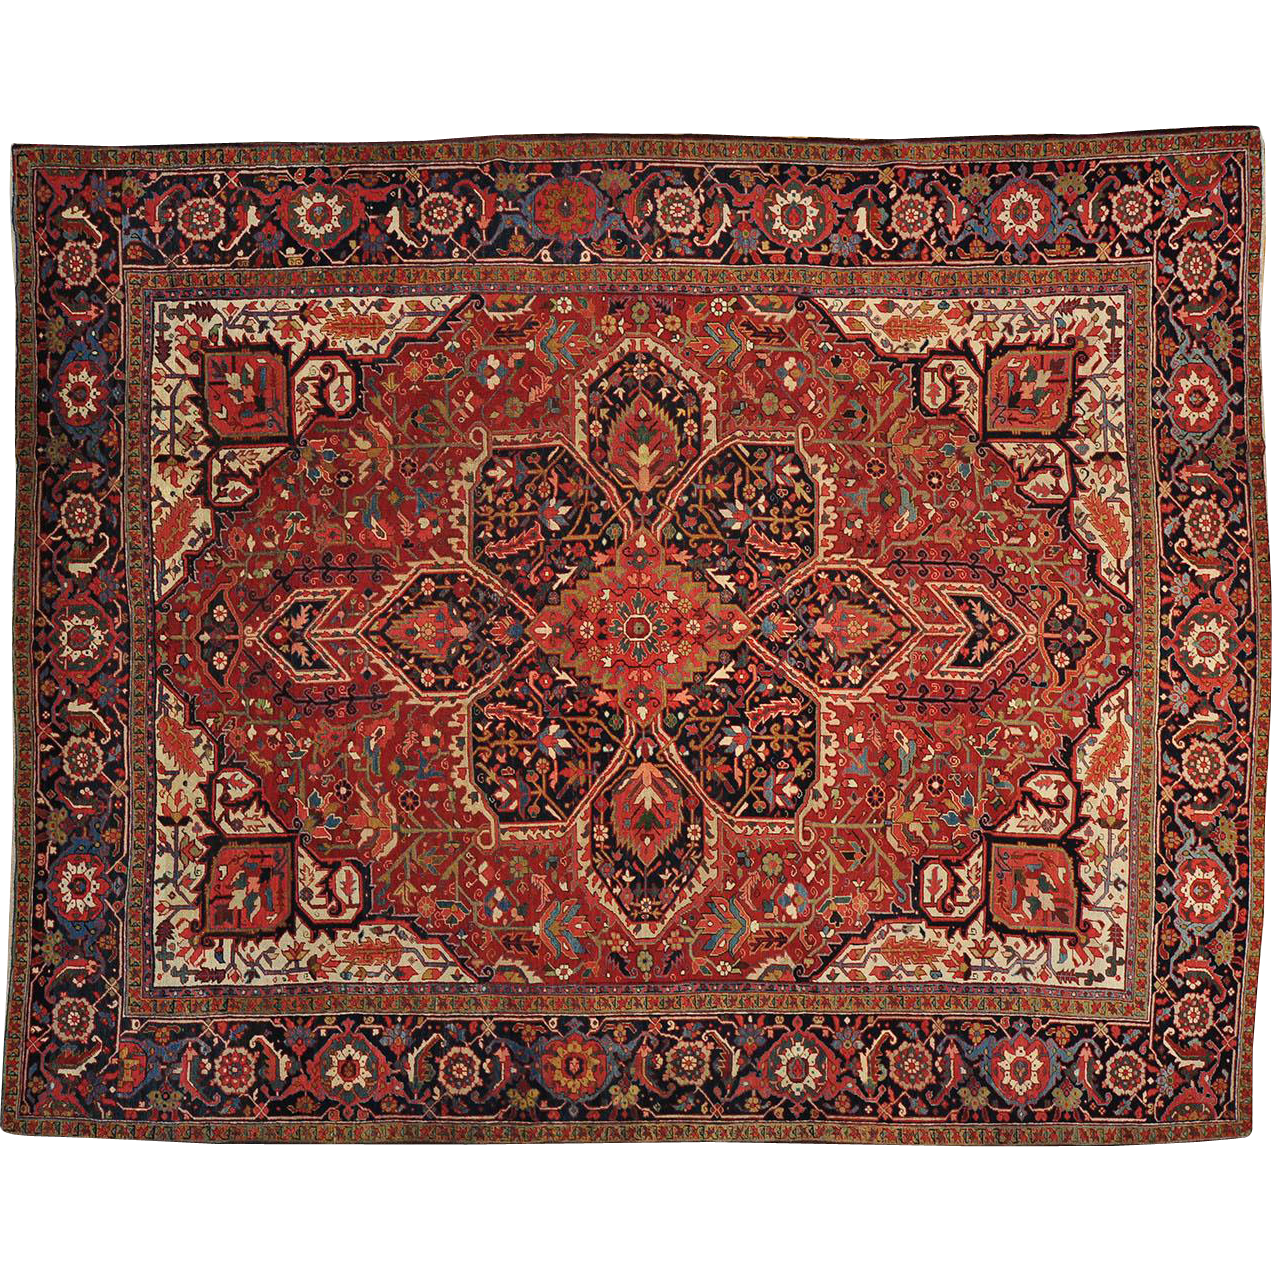 Vintage Persian Bokhara Wool Area Rug 10 X 13: Hand Knotted Antique Persian Heriz 11'x13' Exc Cond 100